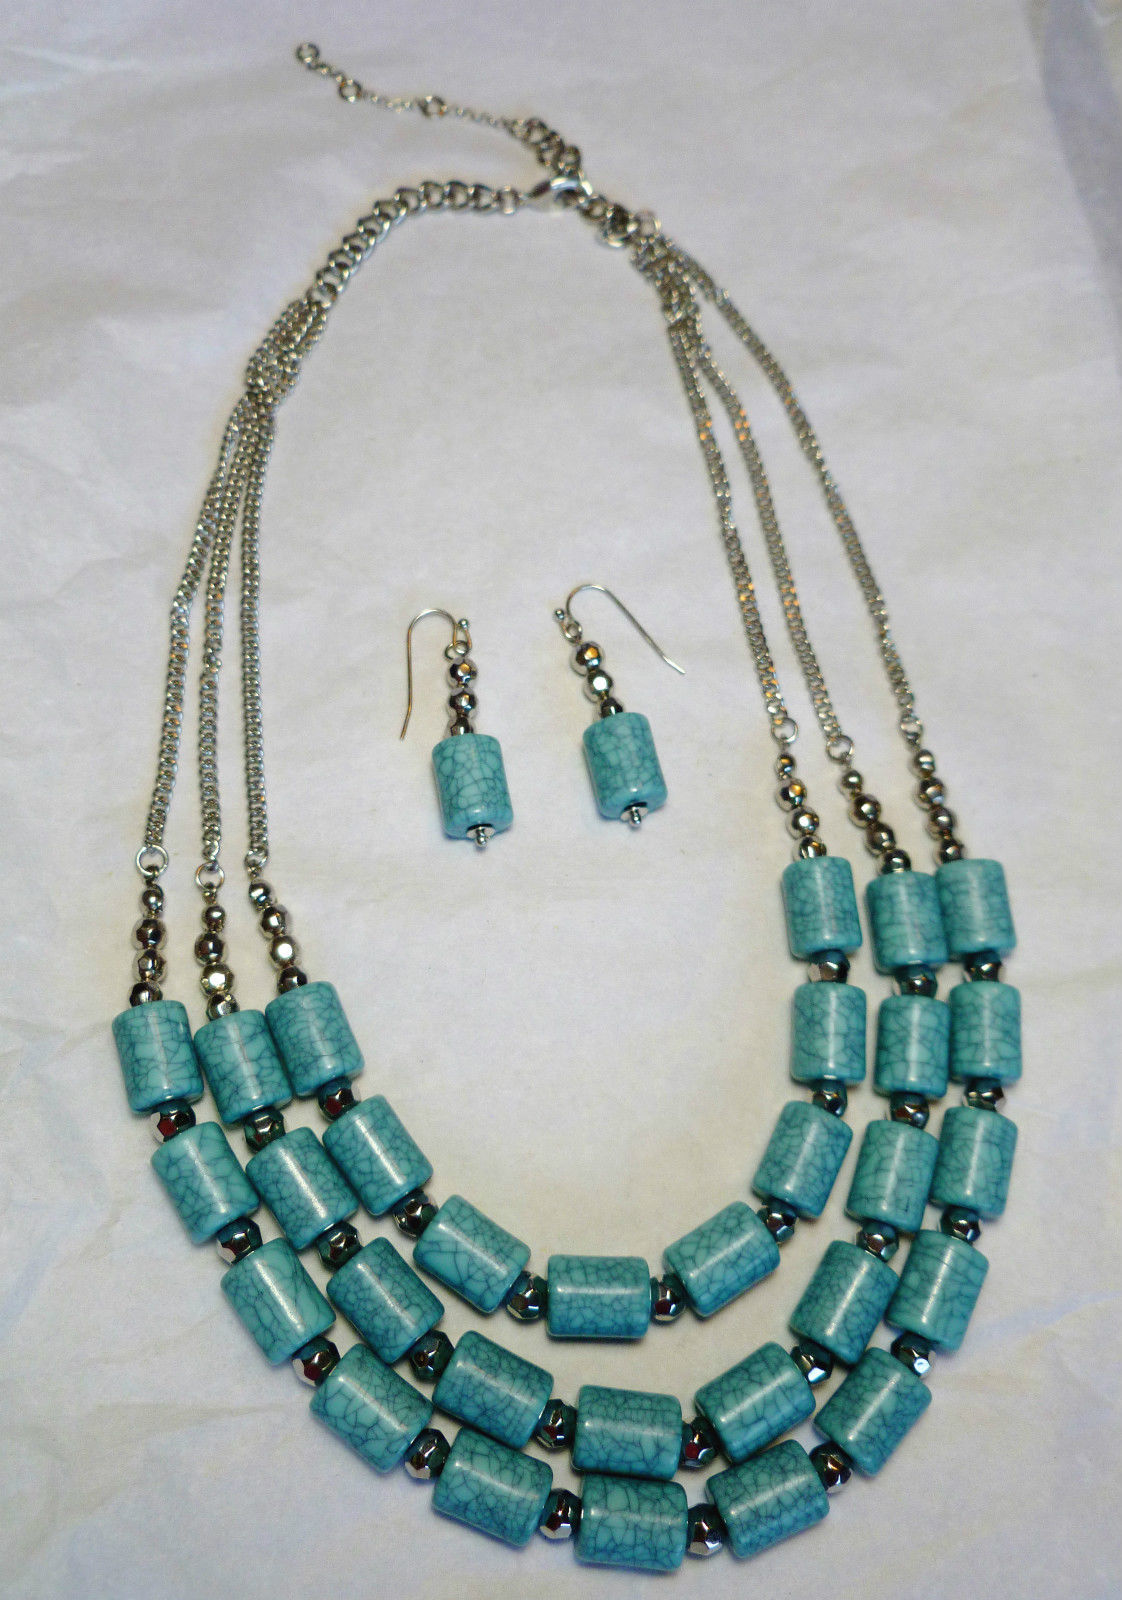 Turquoise 3 Tier Necklace & Earring Set